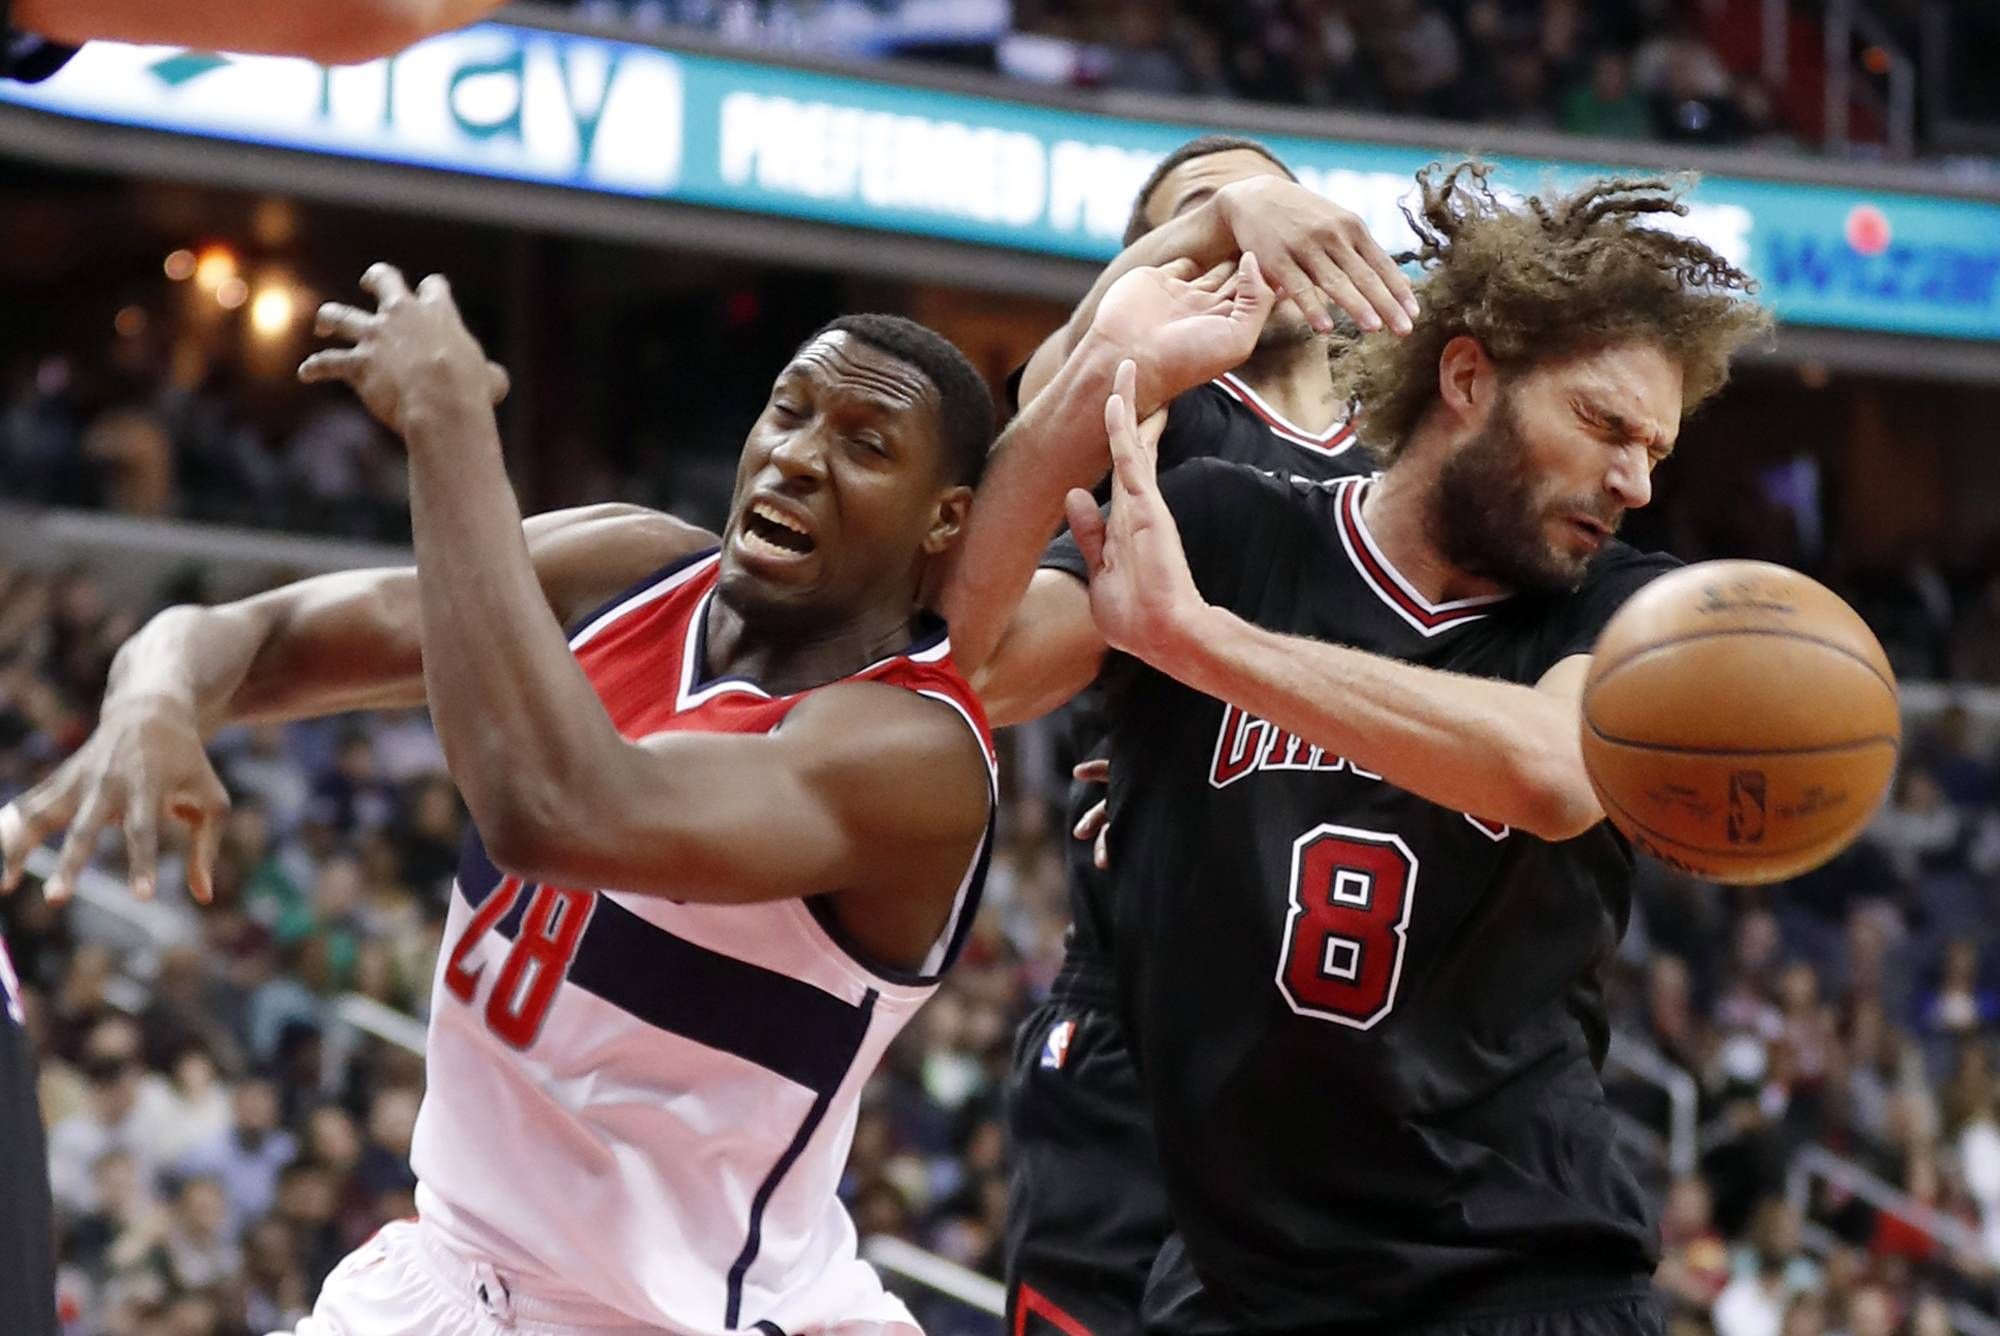 Bulls show life without Wade, but fall short against Wizards